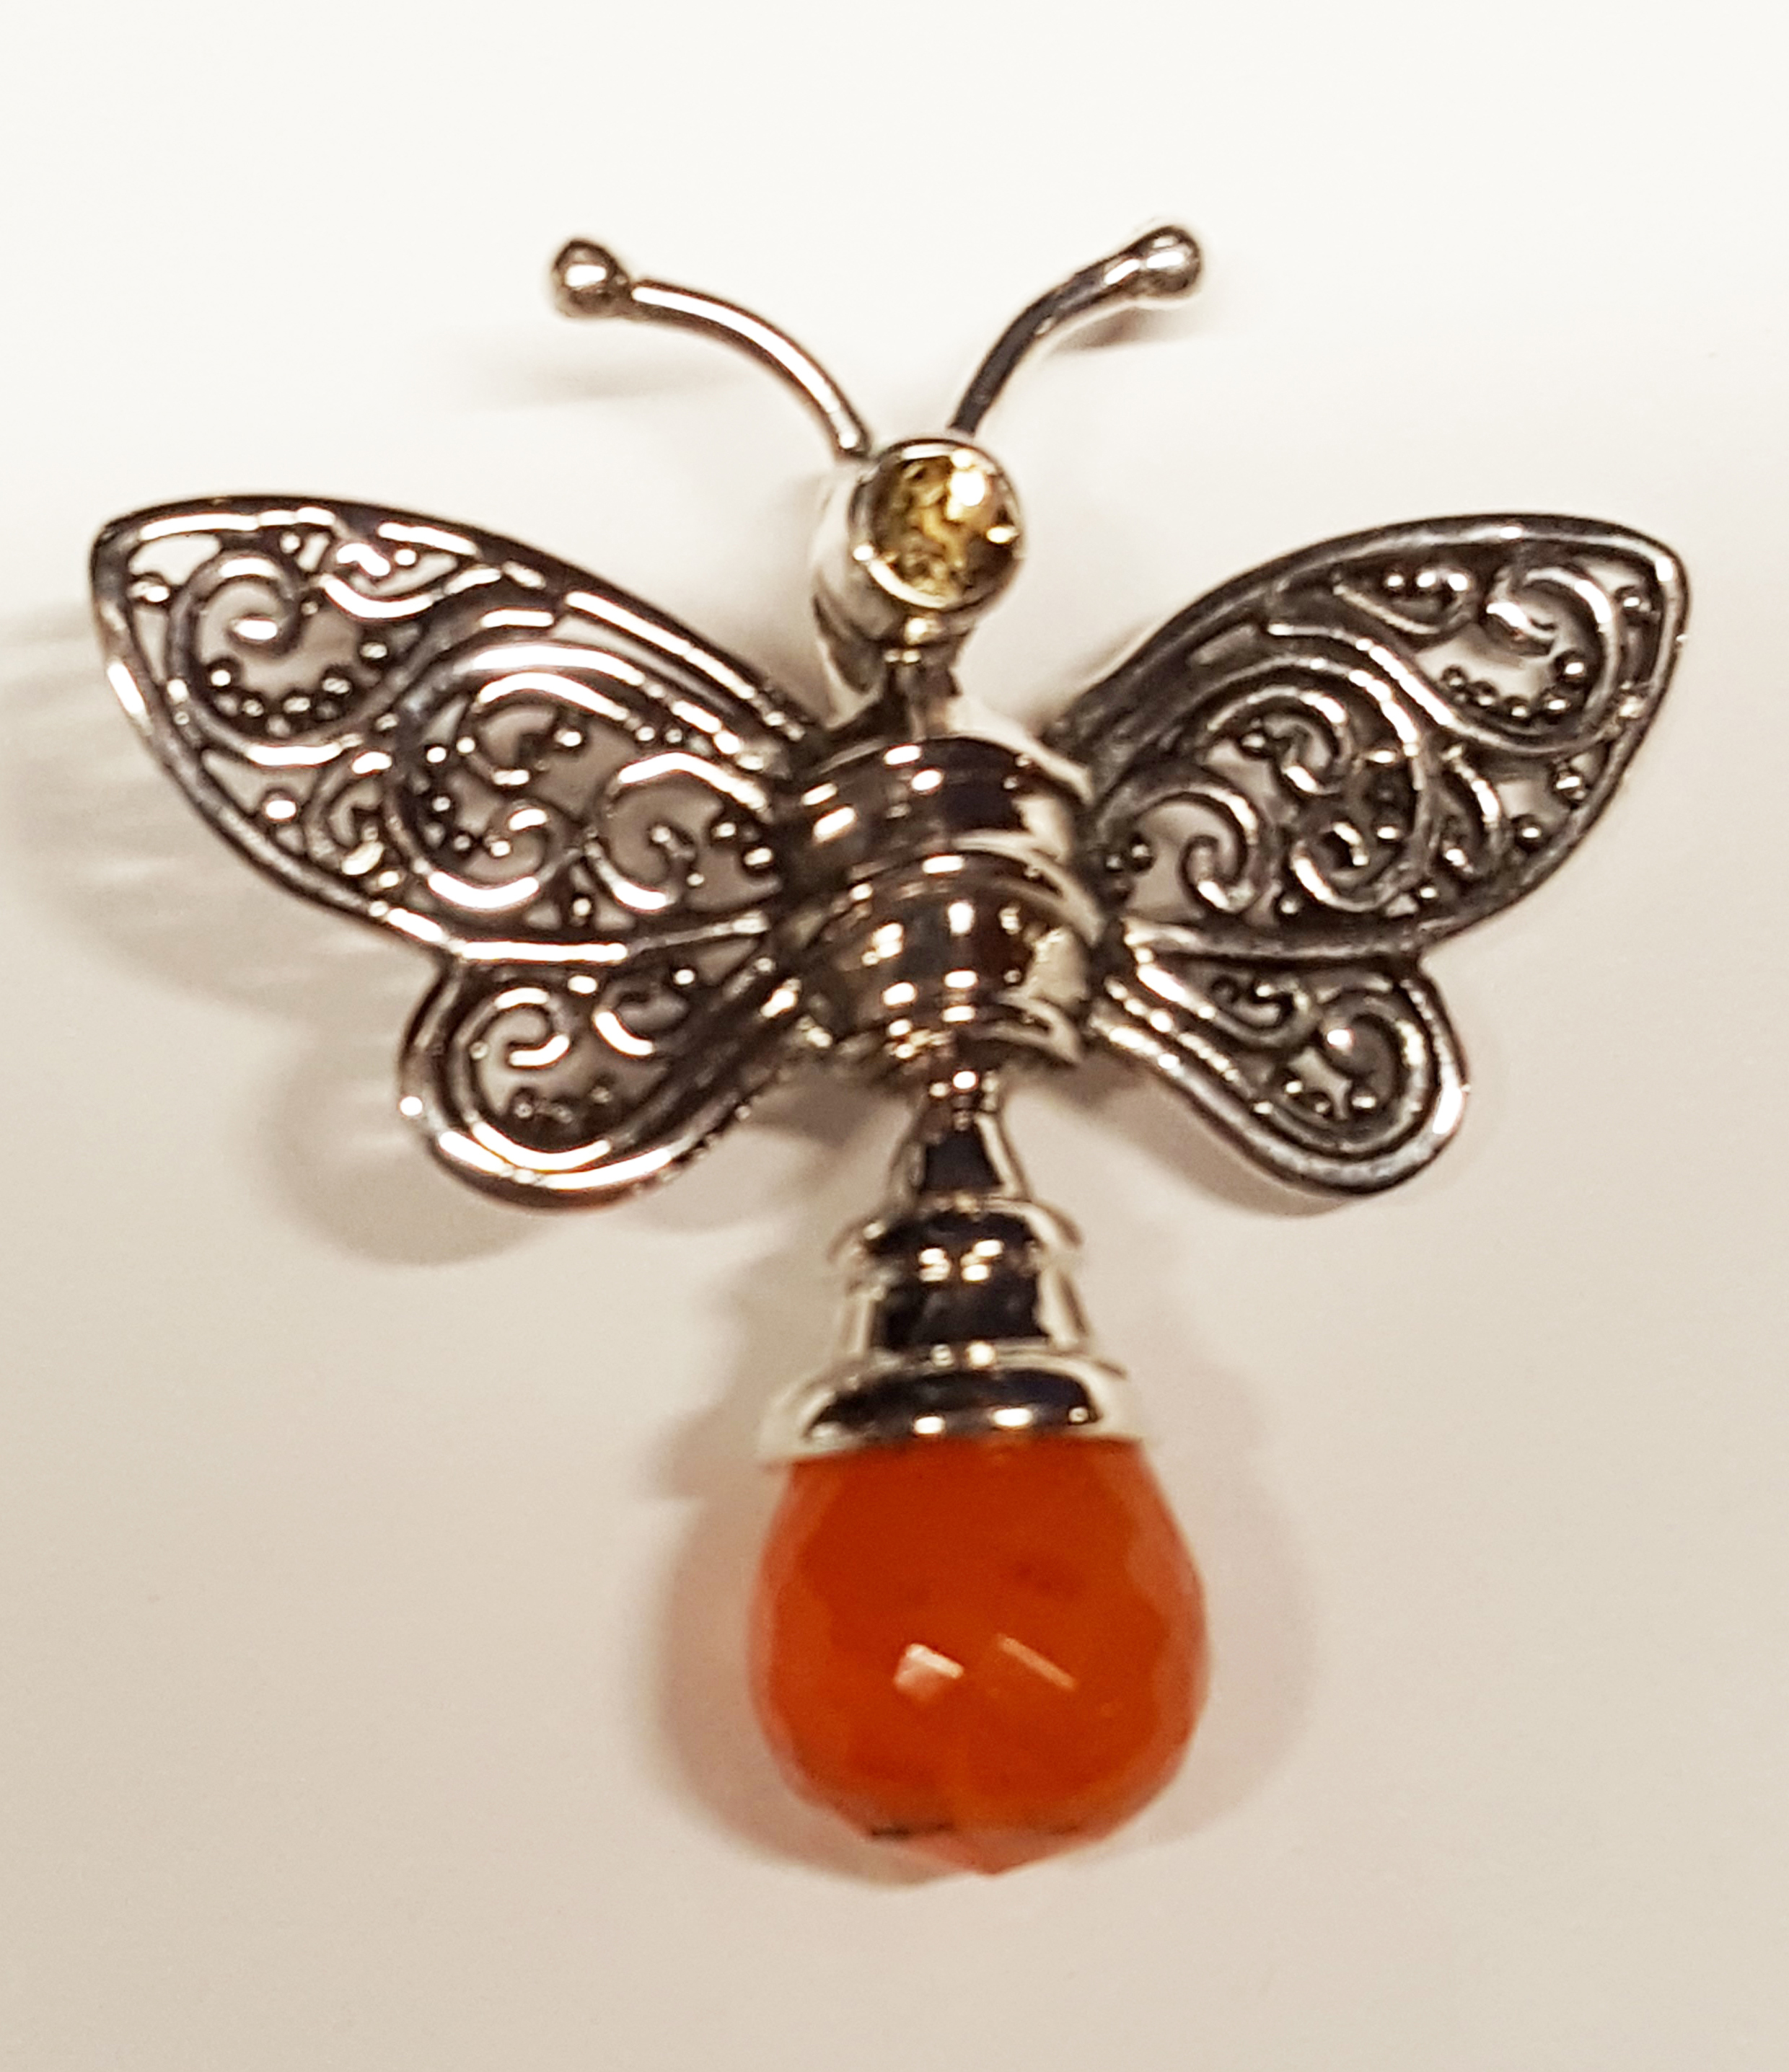 dragonfly artisan pendant products fredrick necklace button prince dragongly jewelry embellished